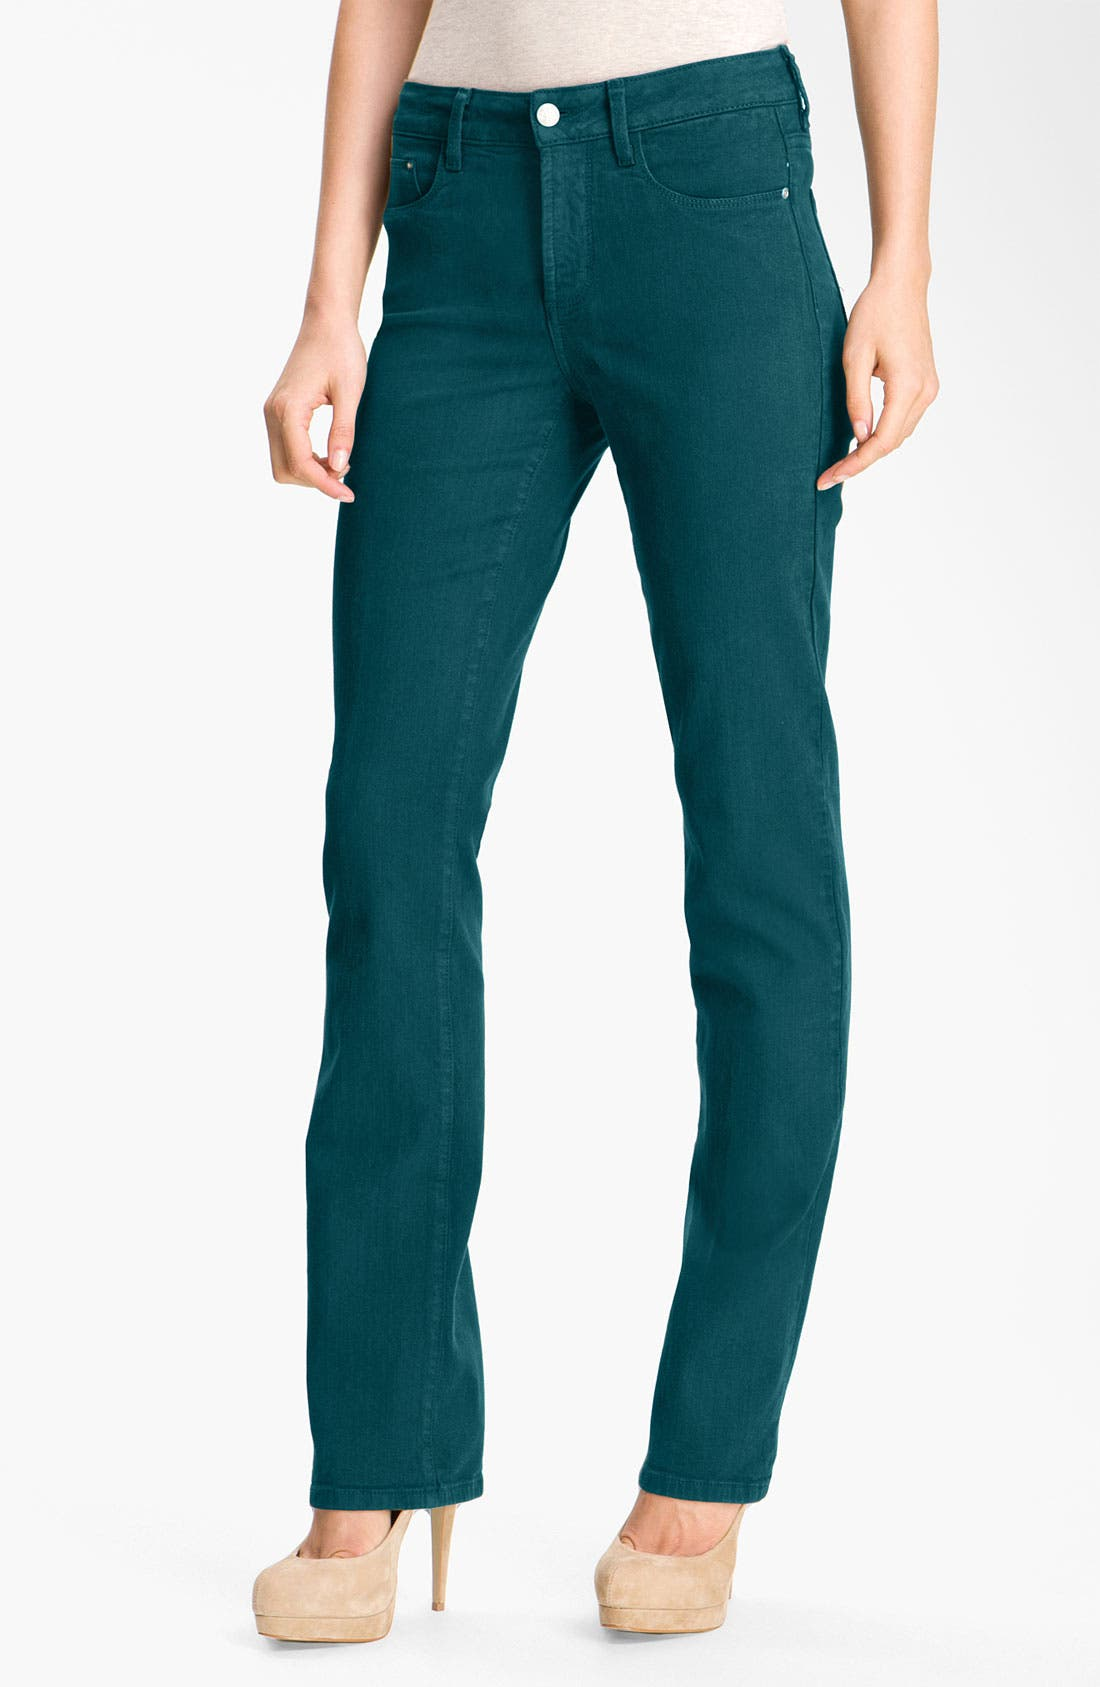 Alternate Image 1 Selected - NYDJ 'Marilyn' Colored Straight Leg Stretch Jeans